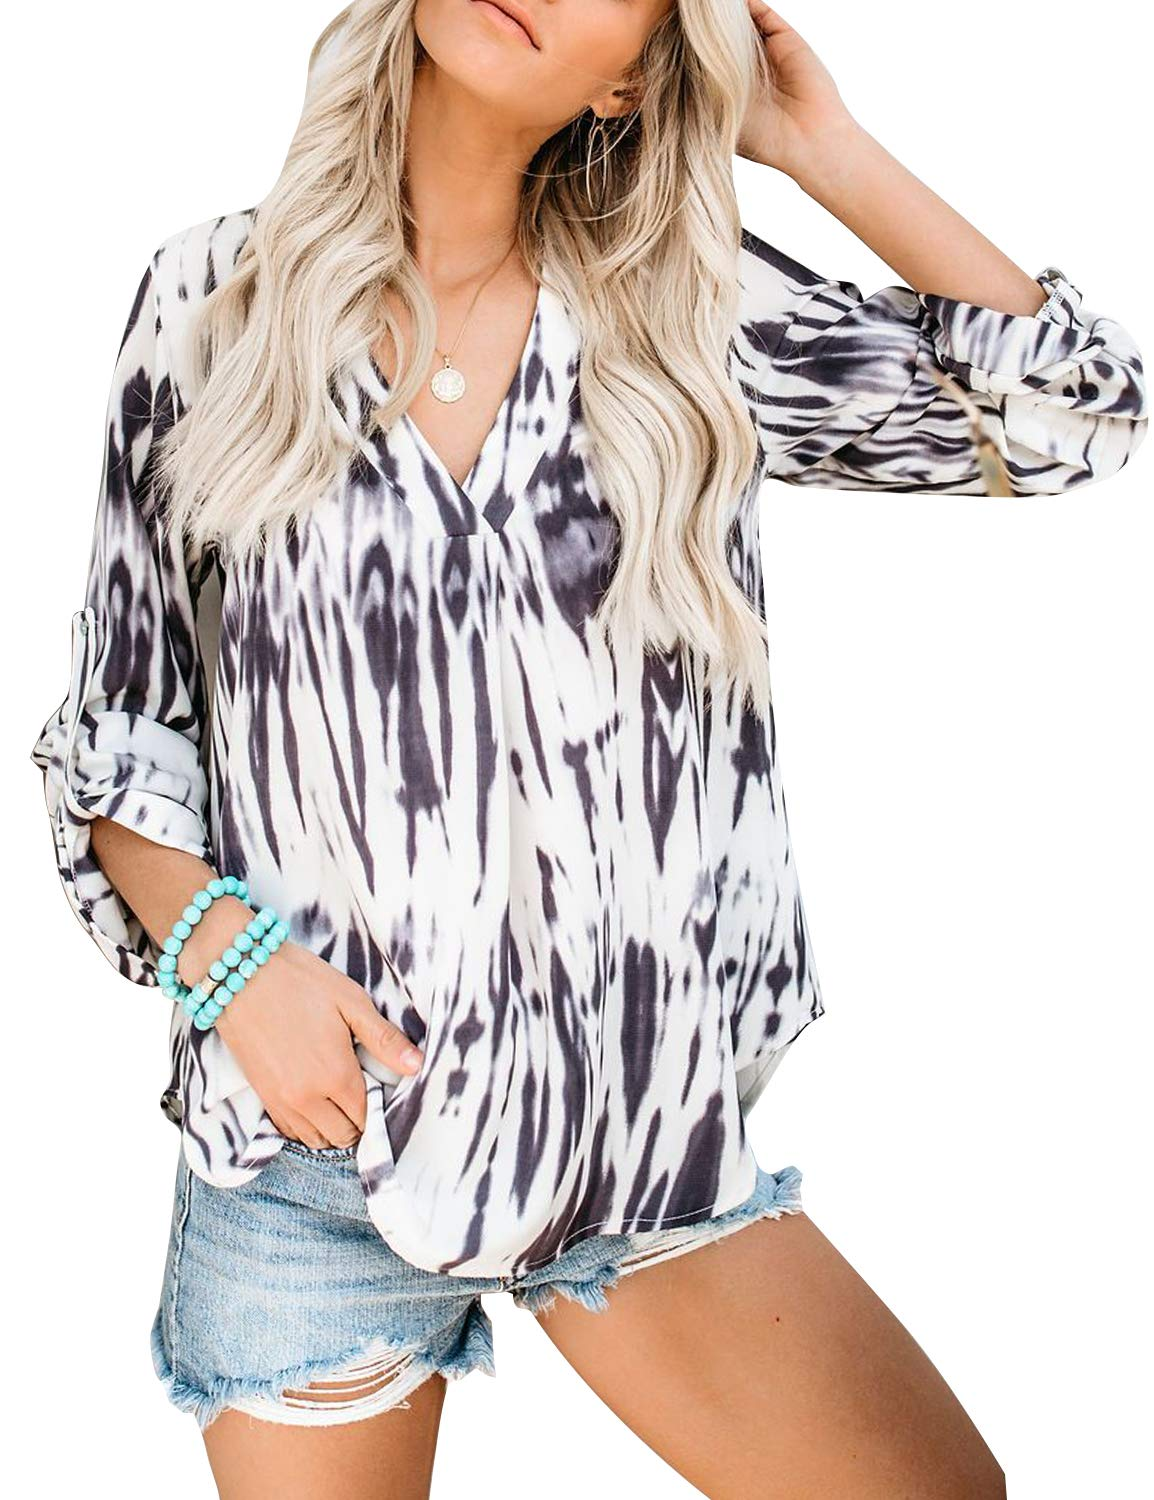 BMJL Women's Tie Dyed Top V Neck Shirt Oversized Blouse